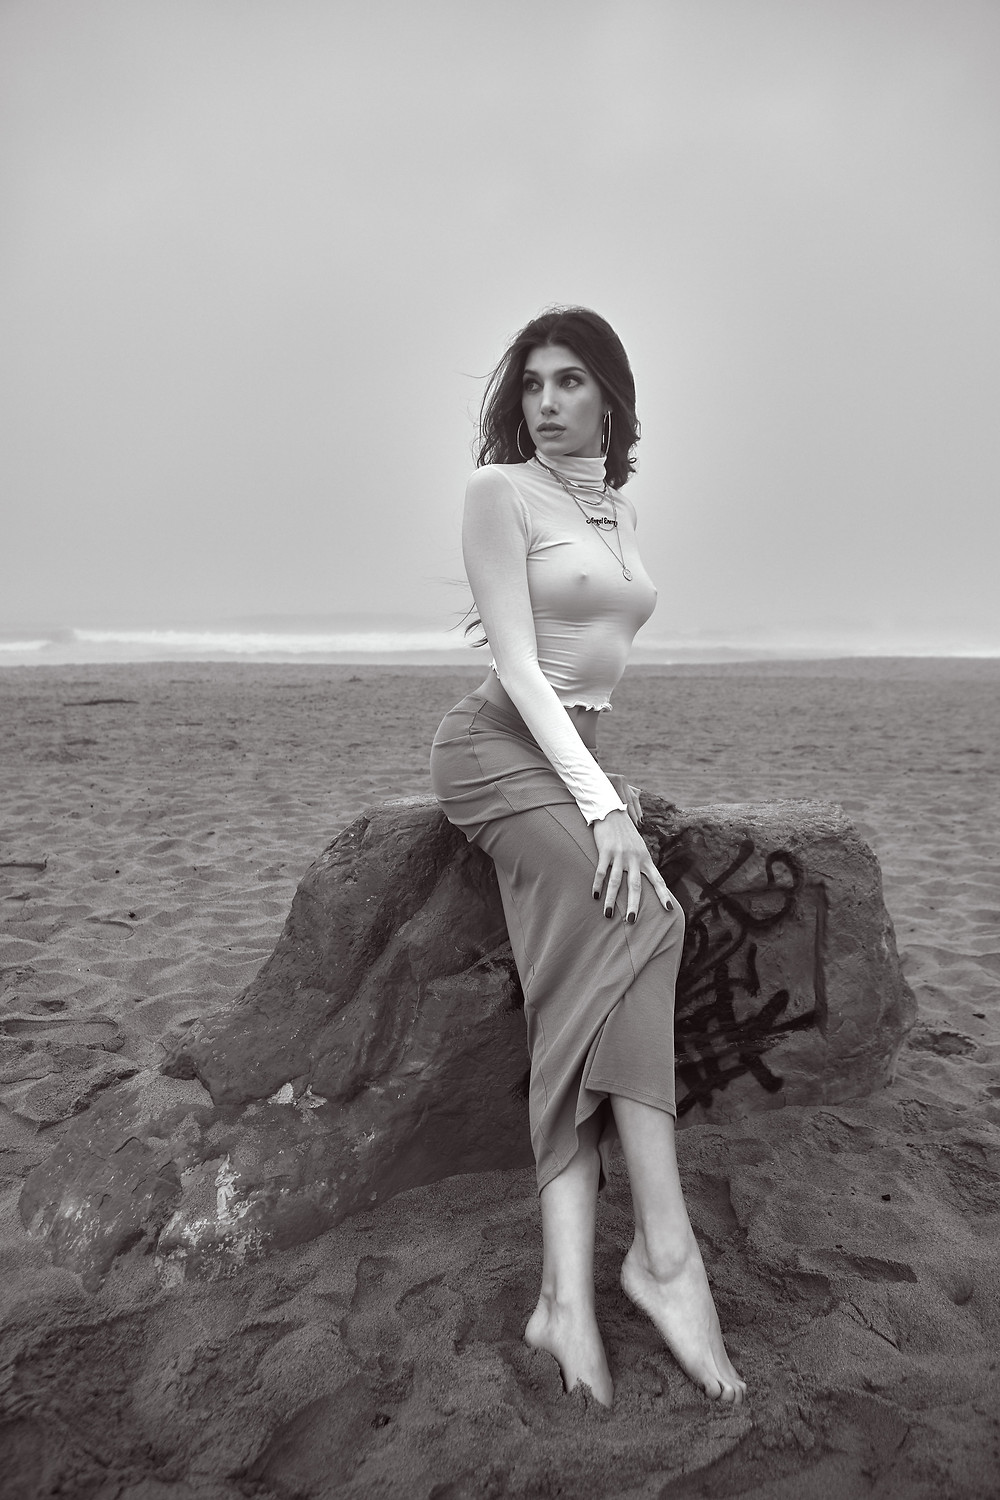 Fashion and swimwear model Sofija Stojkovic wearing a sheer white top and a long maxi skirt.  This image may be deemed sexual and NSFW as nipples and titties are clearly visible.